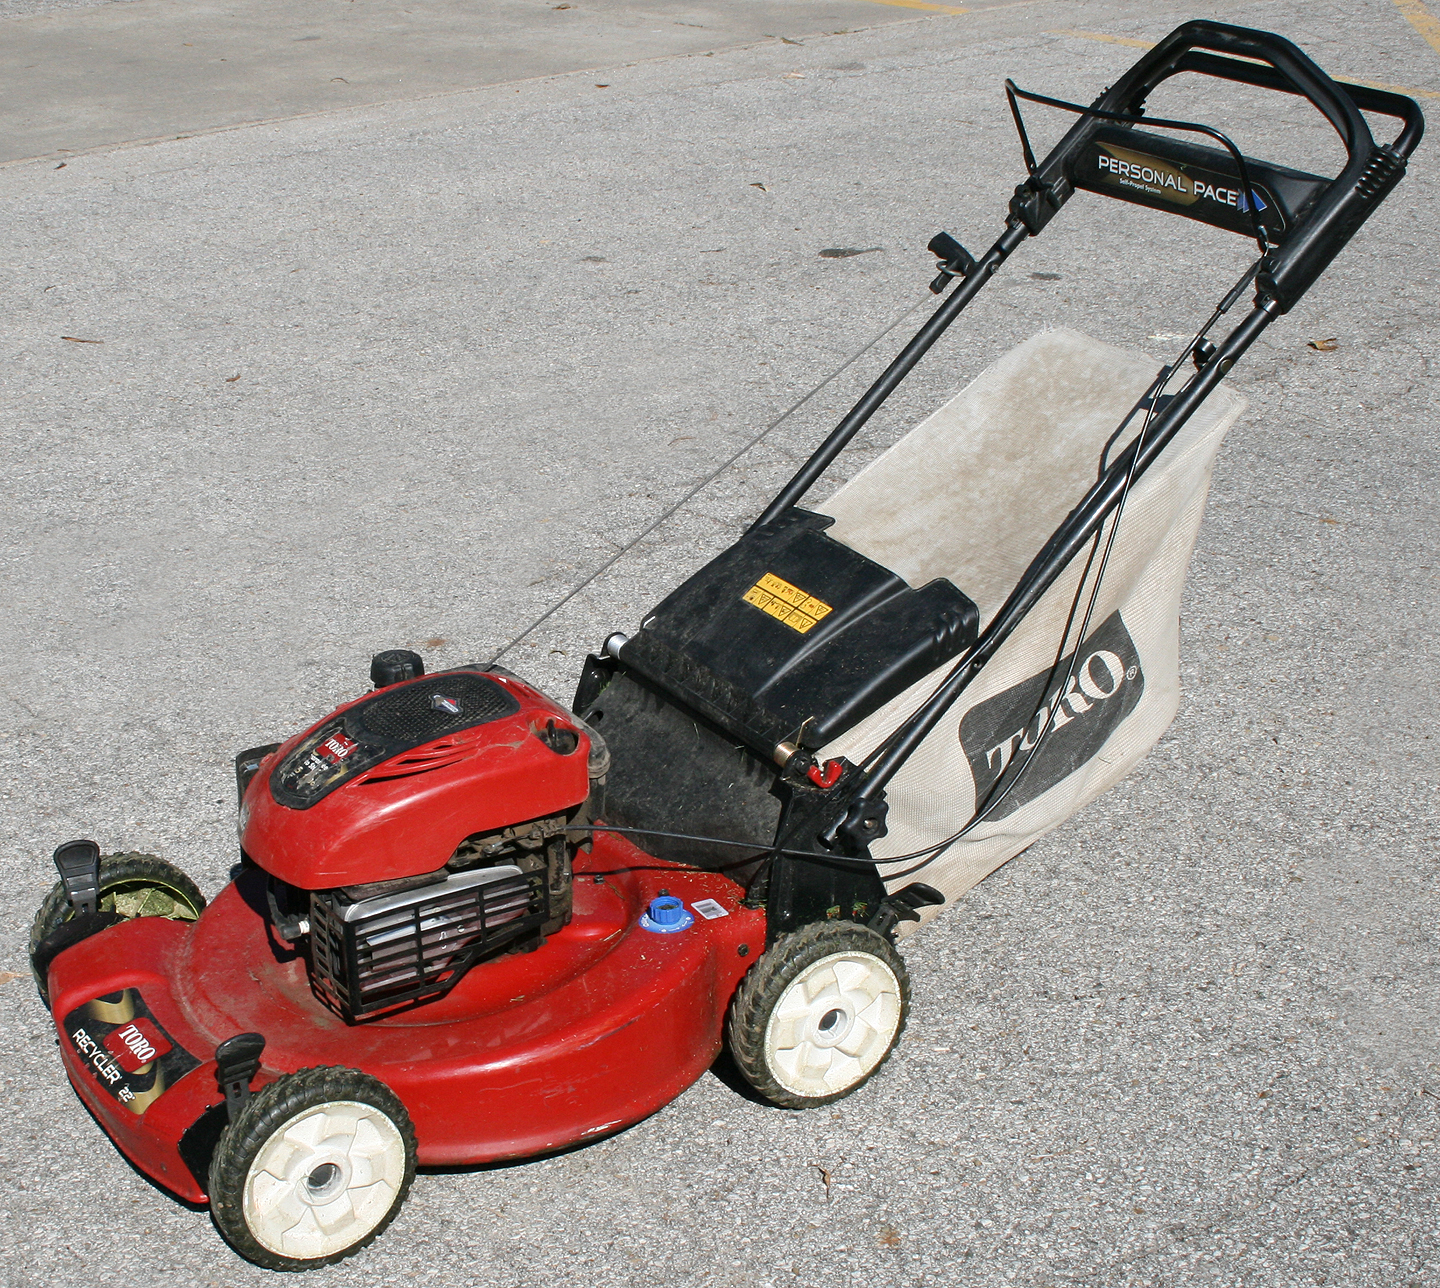 22 Toro Recycler Push Lawn Mower For Rent In Iowa City Ia